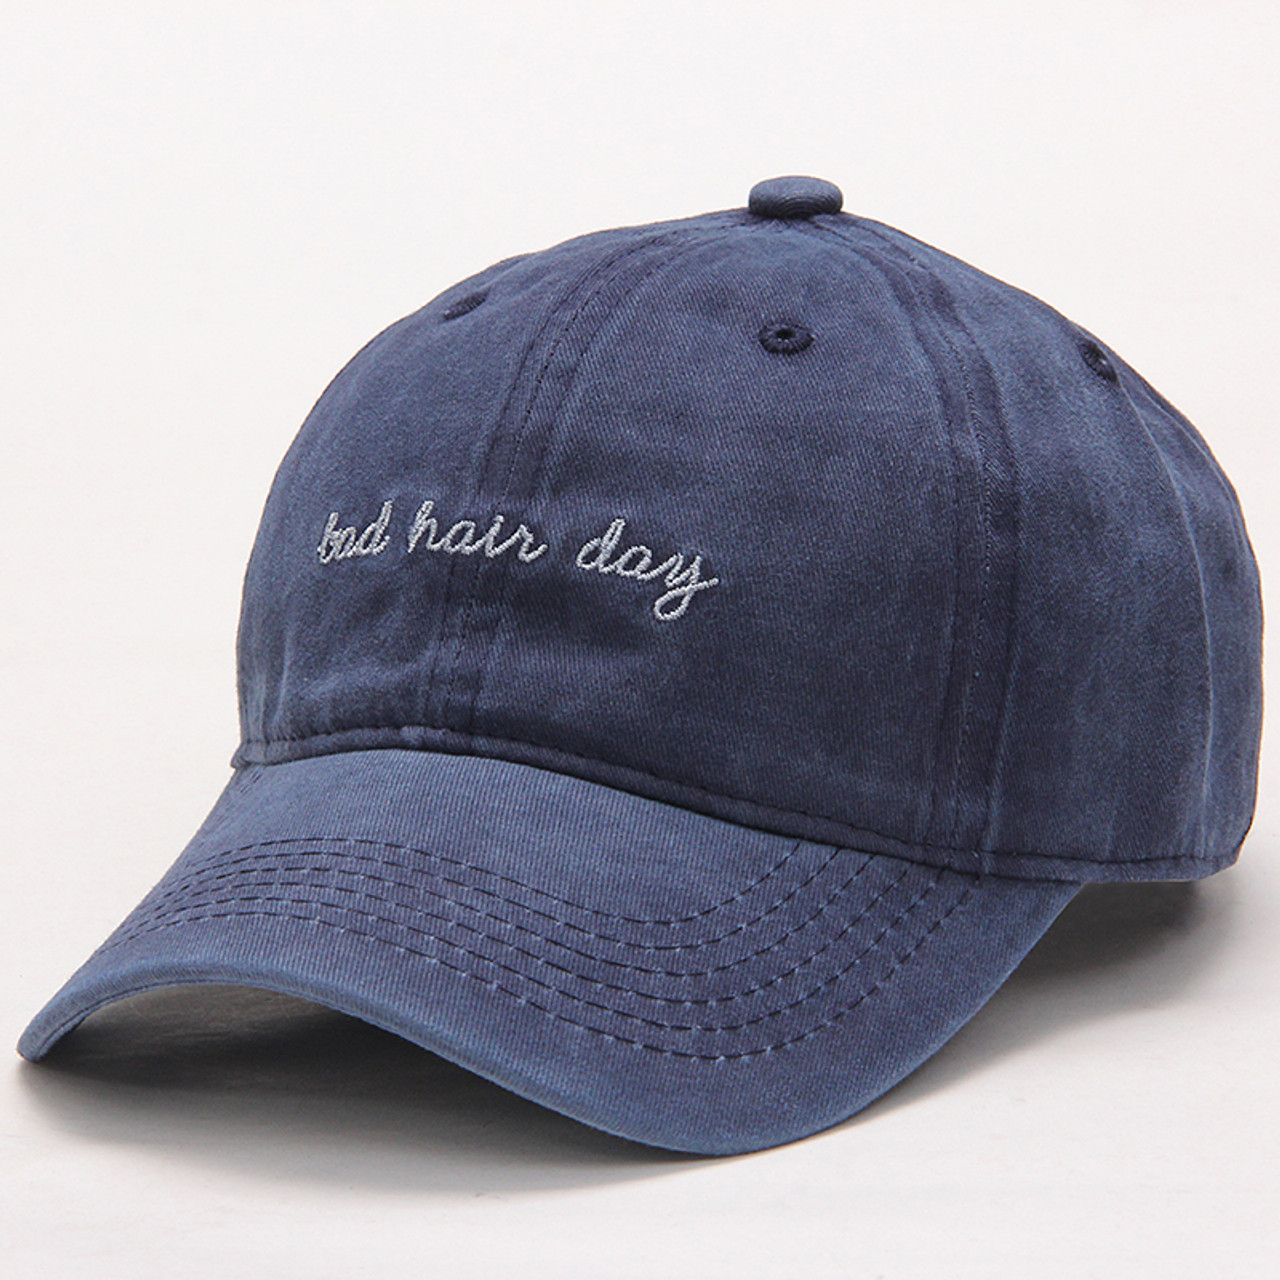 b294c4329e83 High Quality Washed Cotton Bad Hair Day Adjustable Solid Color Baseball Cap  Unisex Couple Cap Fashion ...